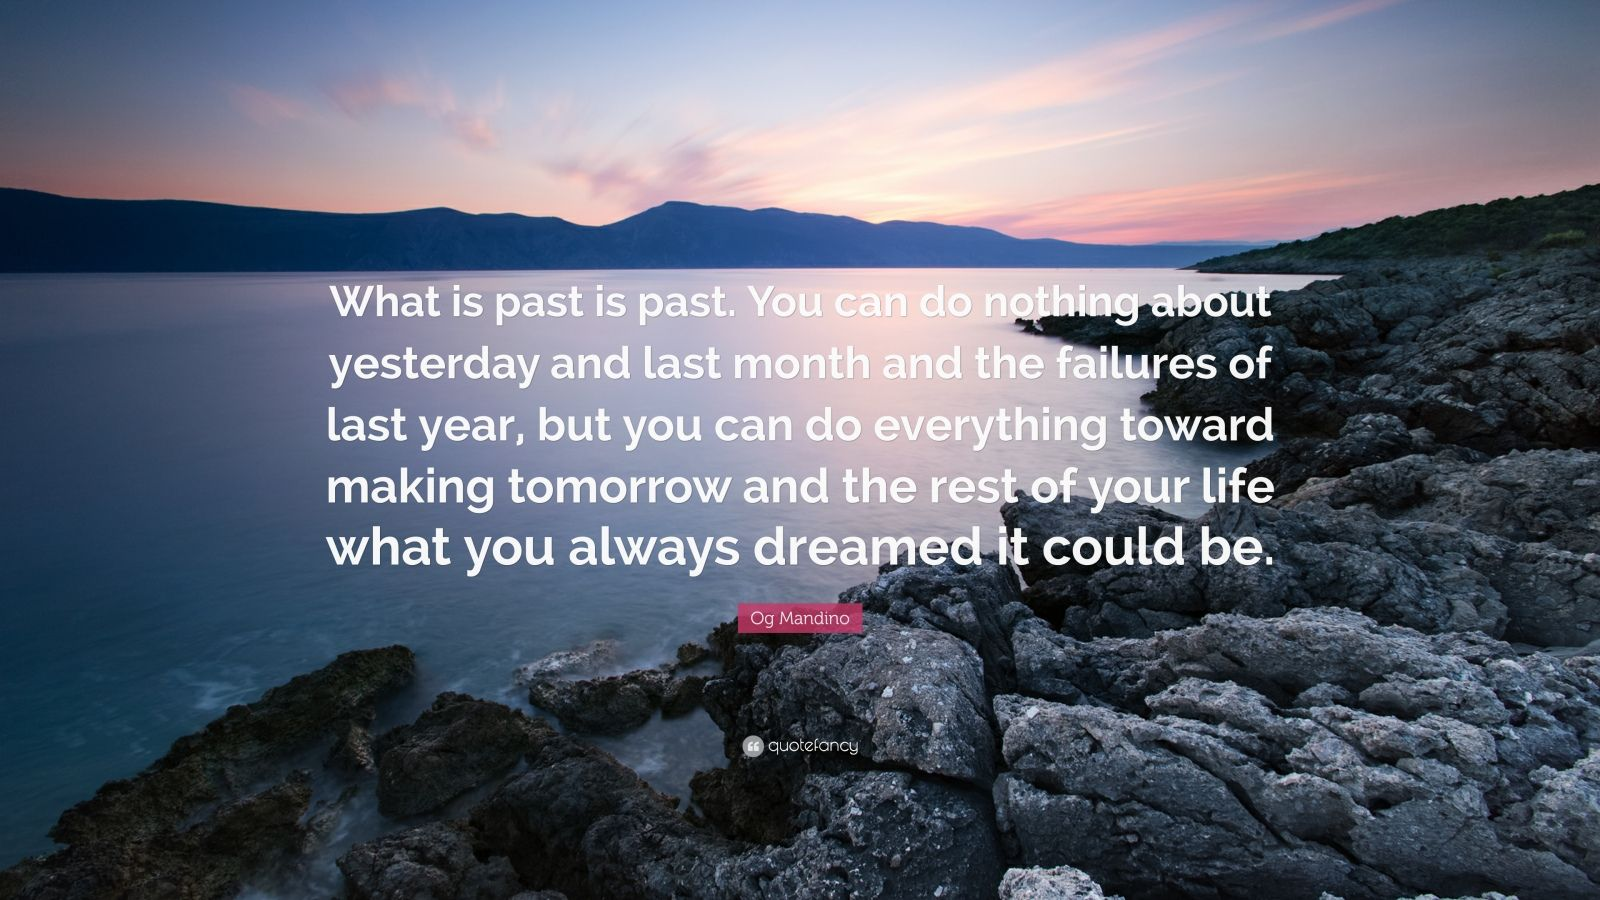 "Og Mandino Quote: ""What is past is past. You can do nothing about yesterday and last month and the failures of last year, but you can do everything toward making tomorrow and the rest of your life what you always dreamed it could be."""